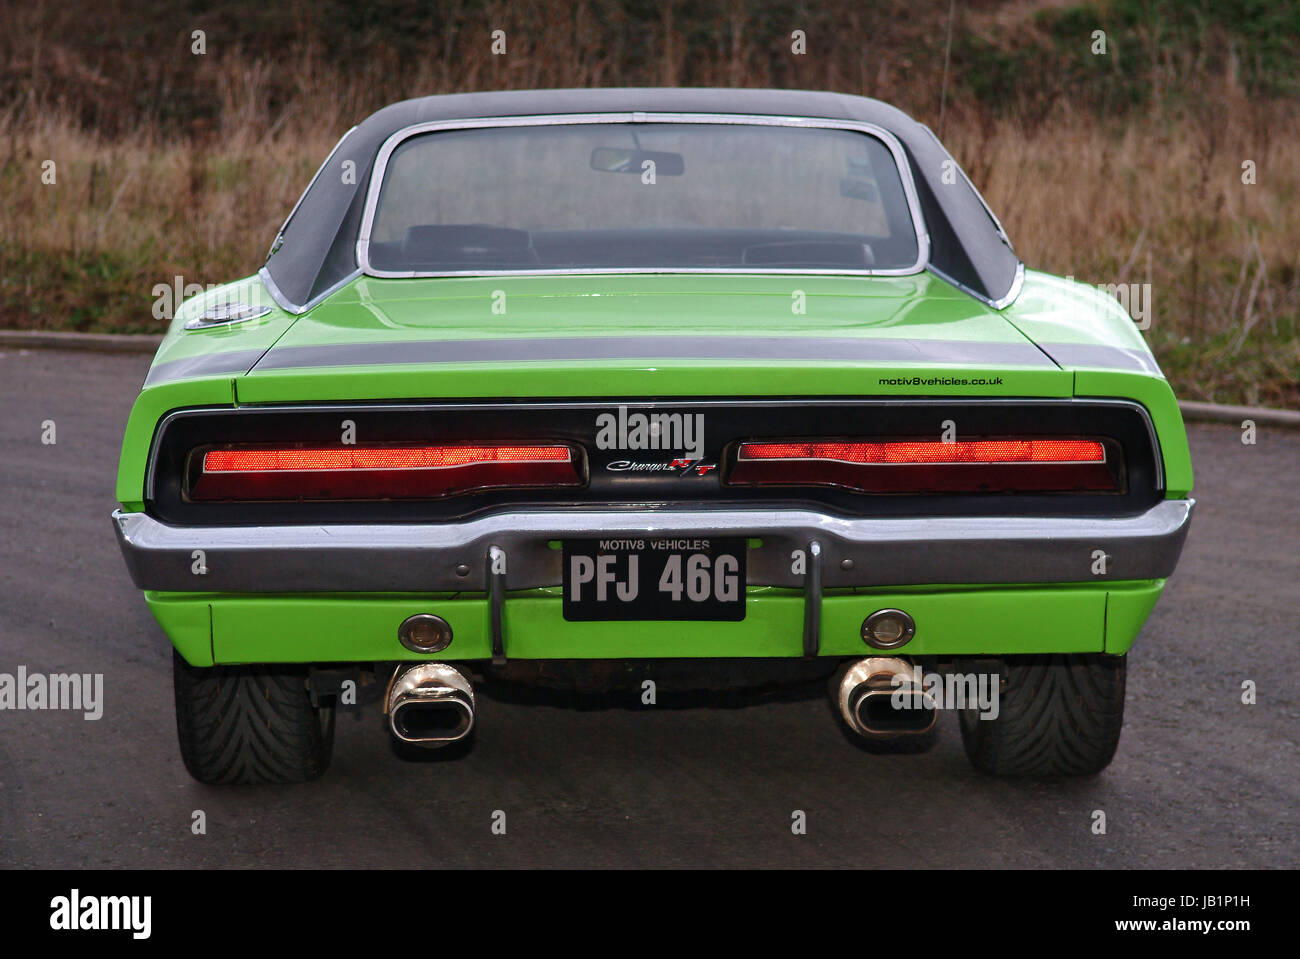 Dodge Cars Stock Photos Images Page 2 Alamy 1949 Charger R T Richard Hammond And His 1969 440 Image